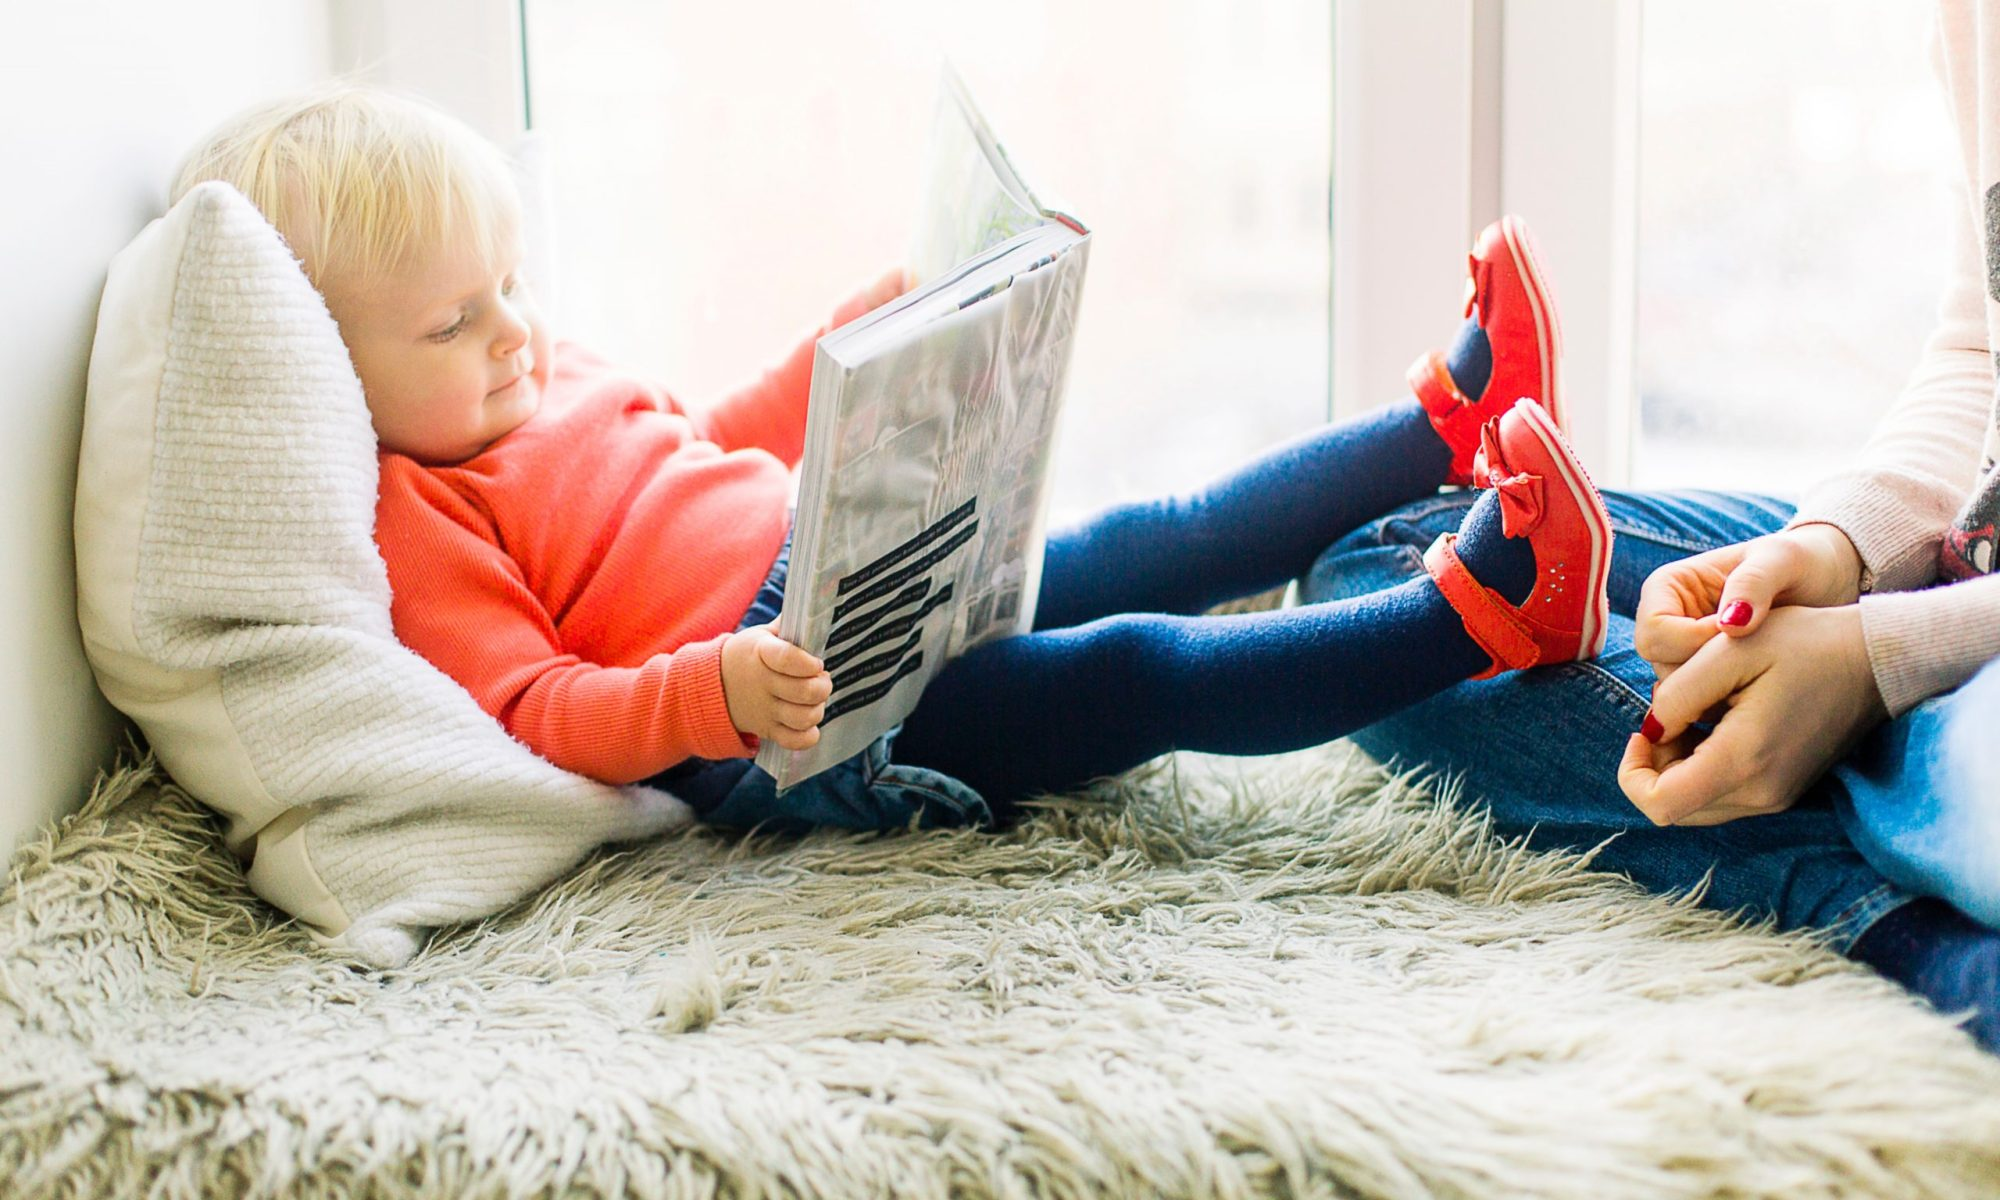 Toddler laying on a bed reading a book with mother sitting nearby.